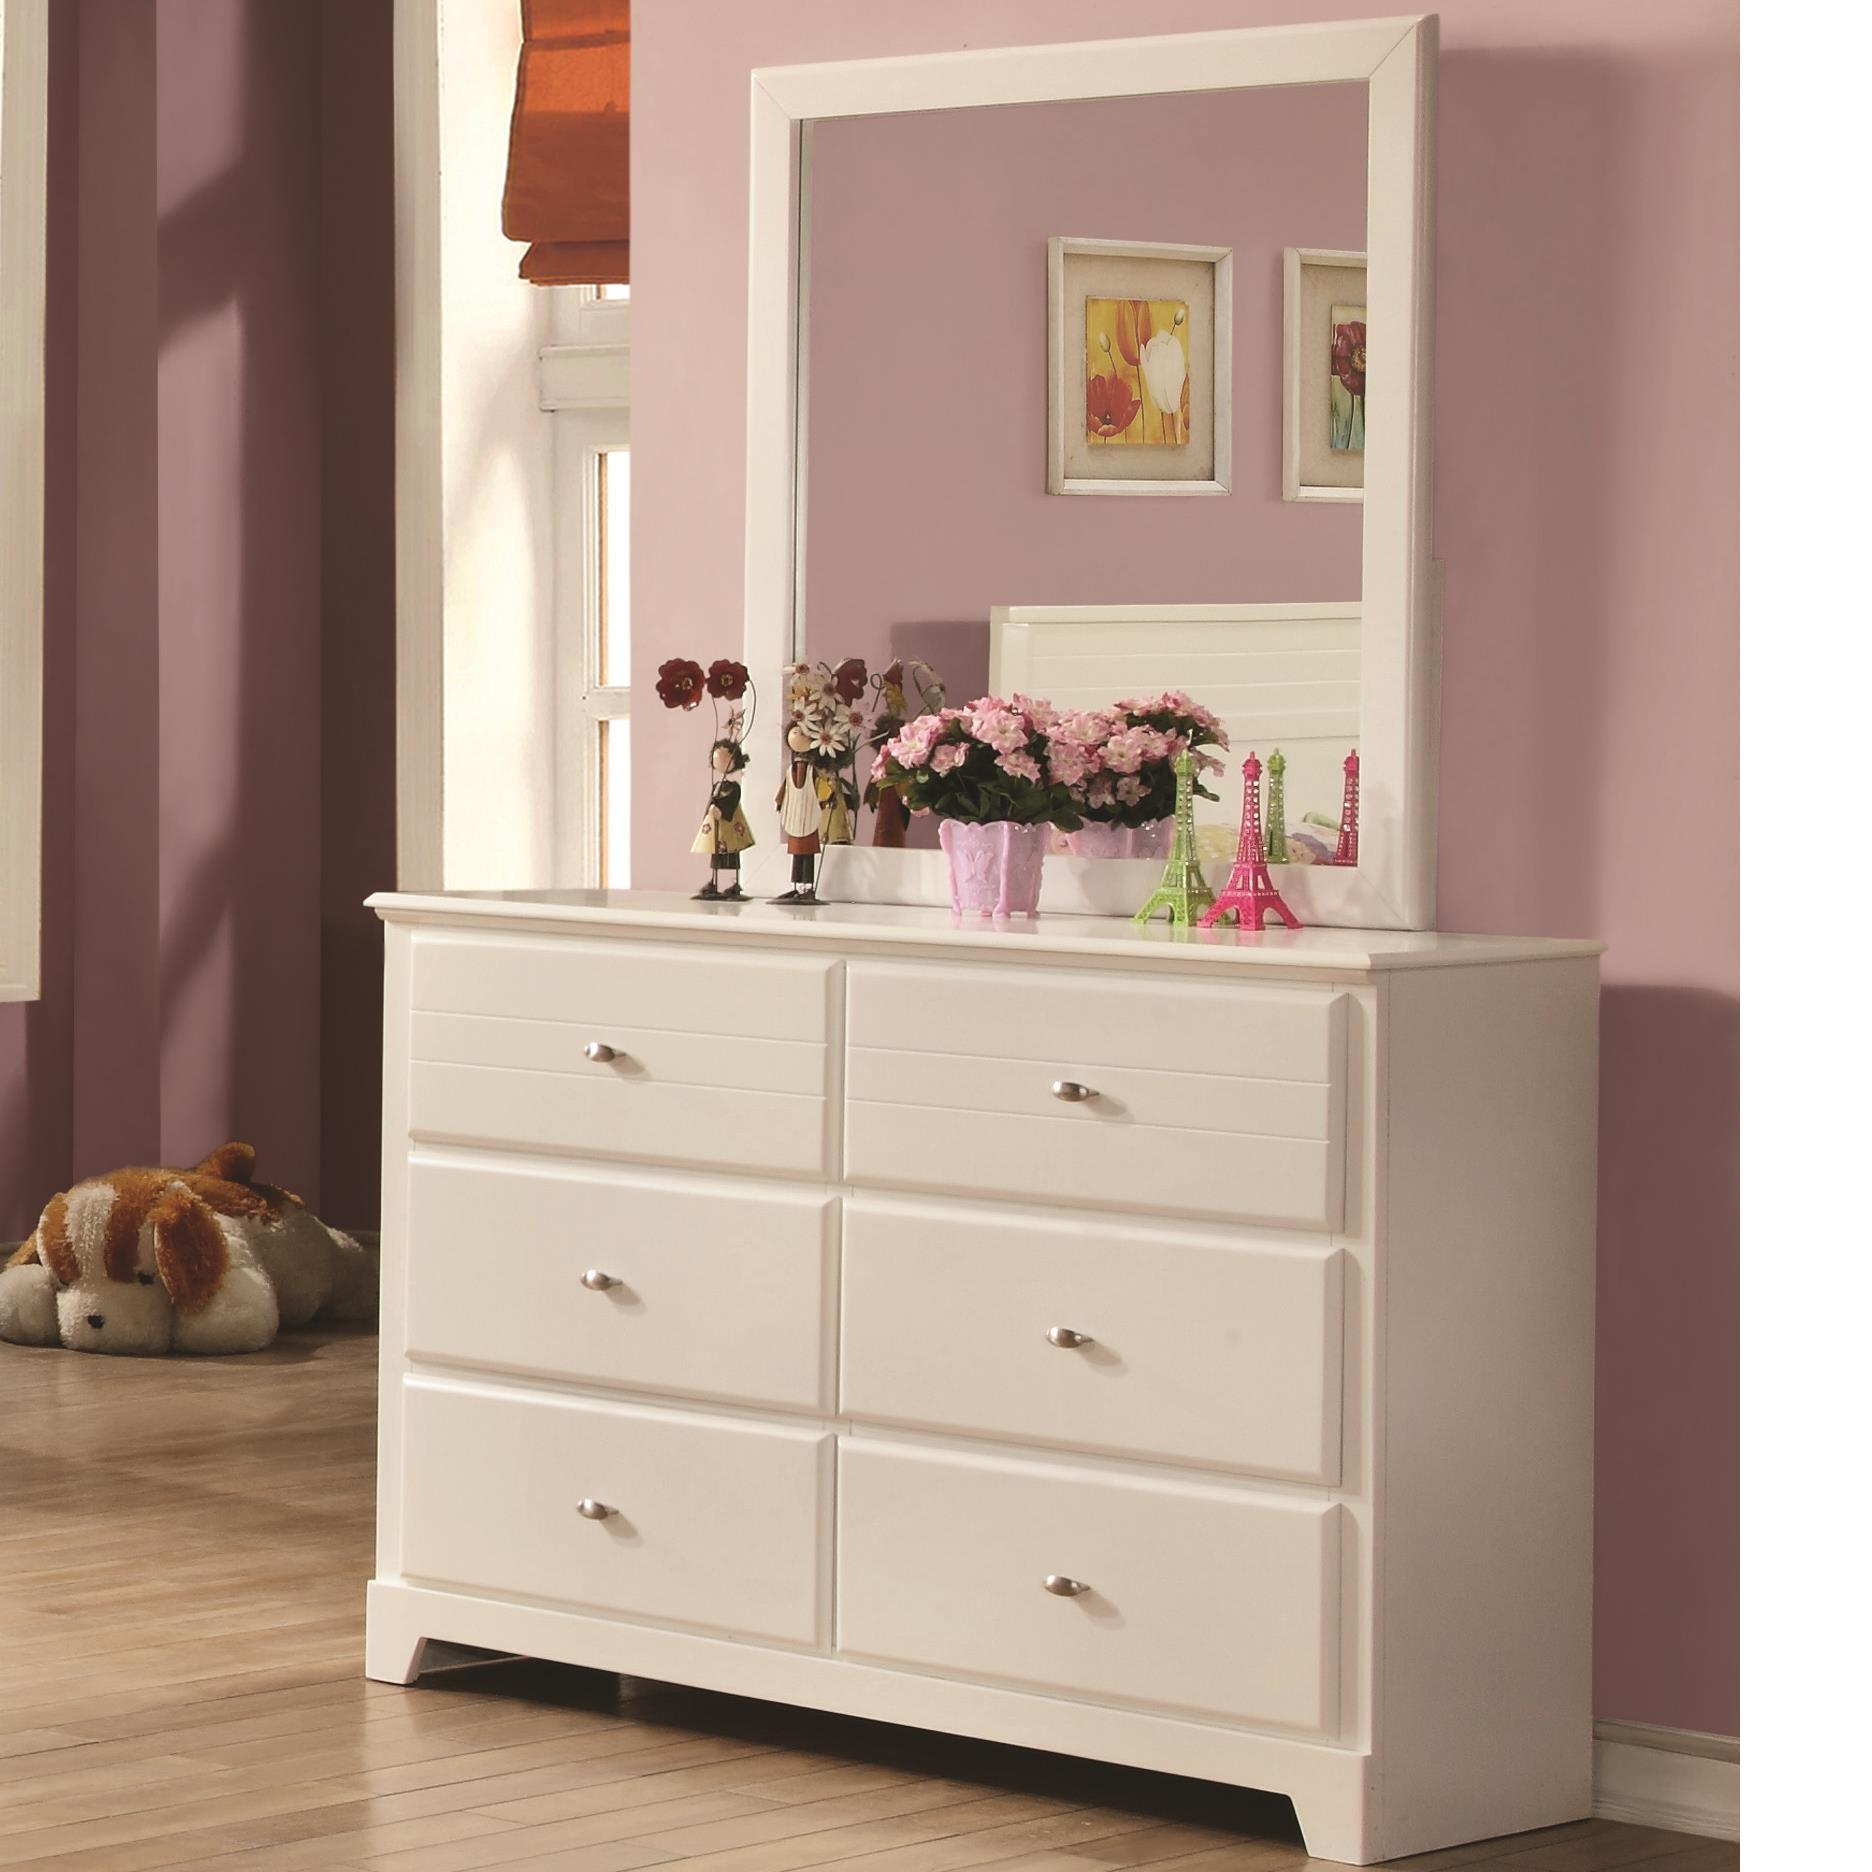 Coaster Ashton Collection Dresser and Mirror - Item Number: 400763+400764